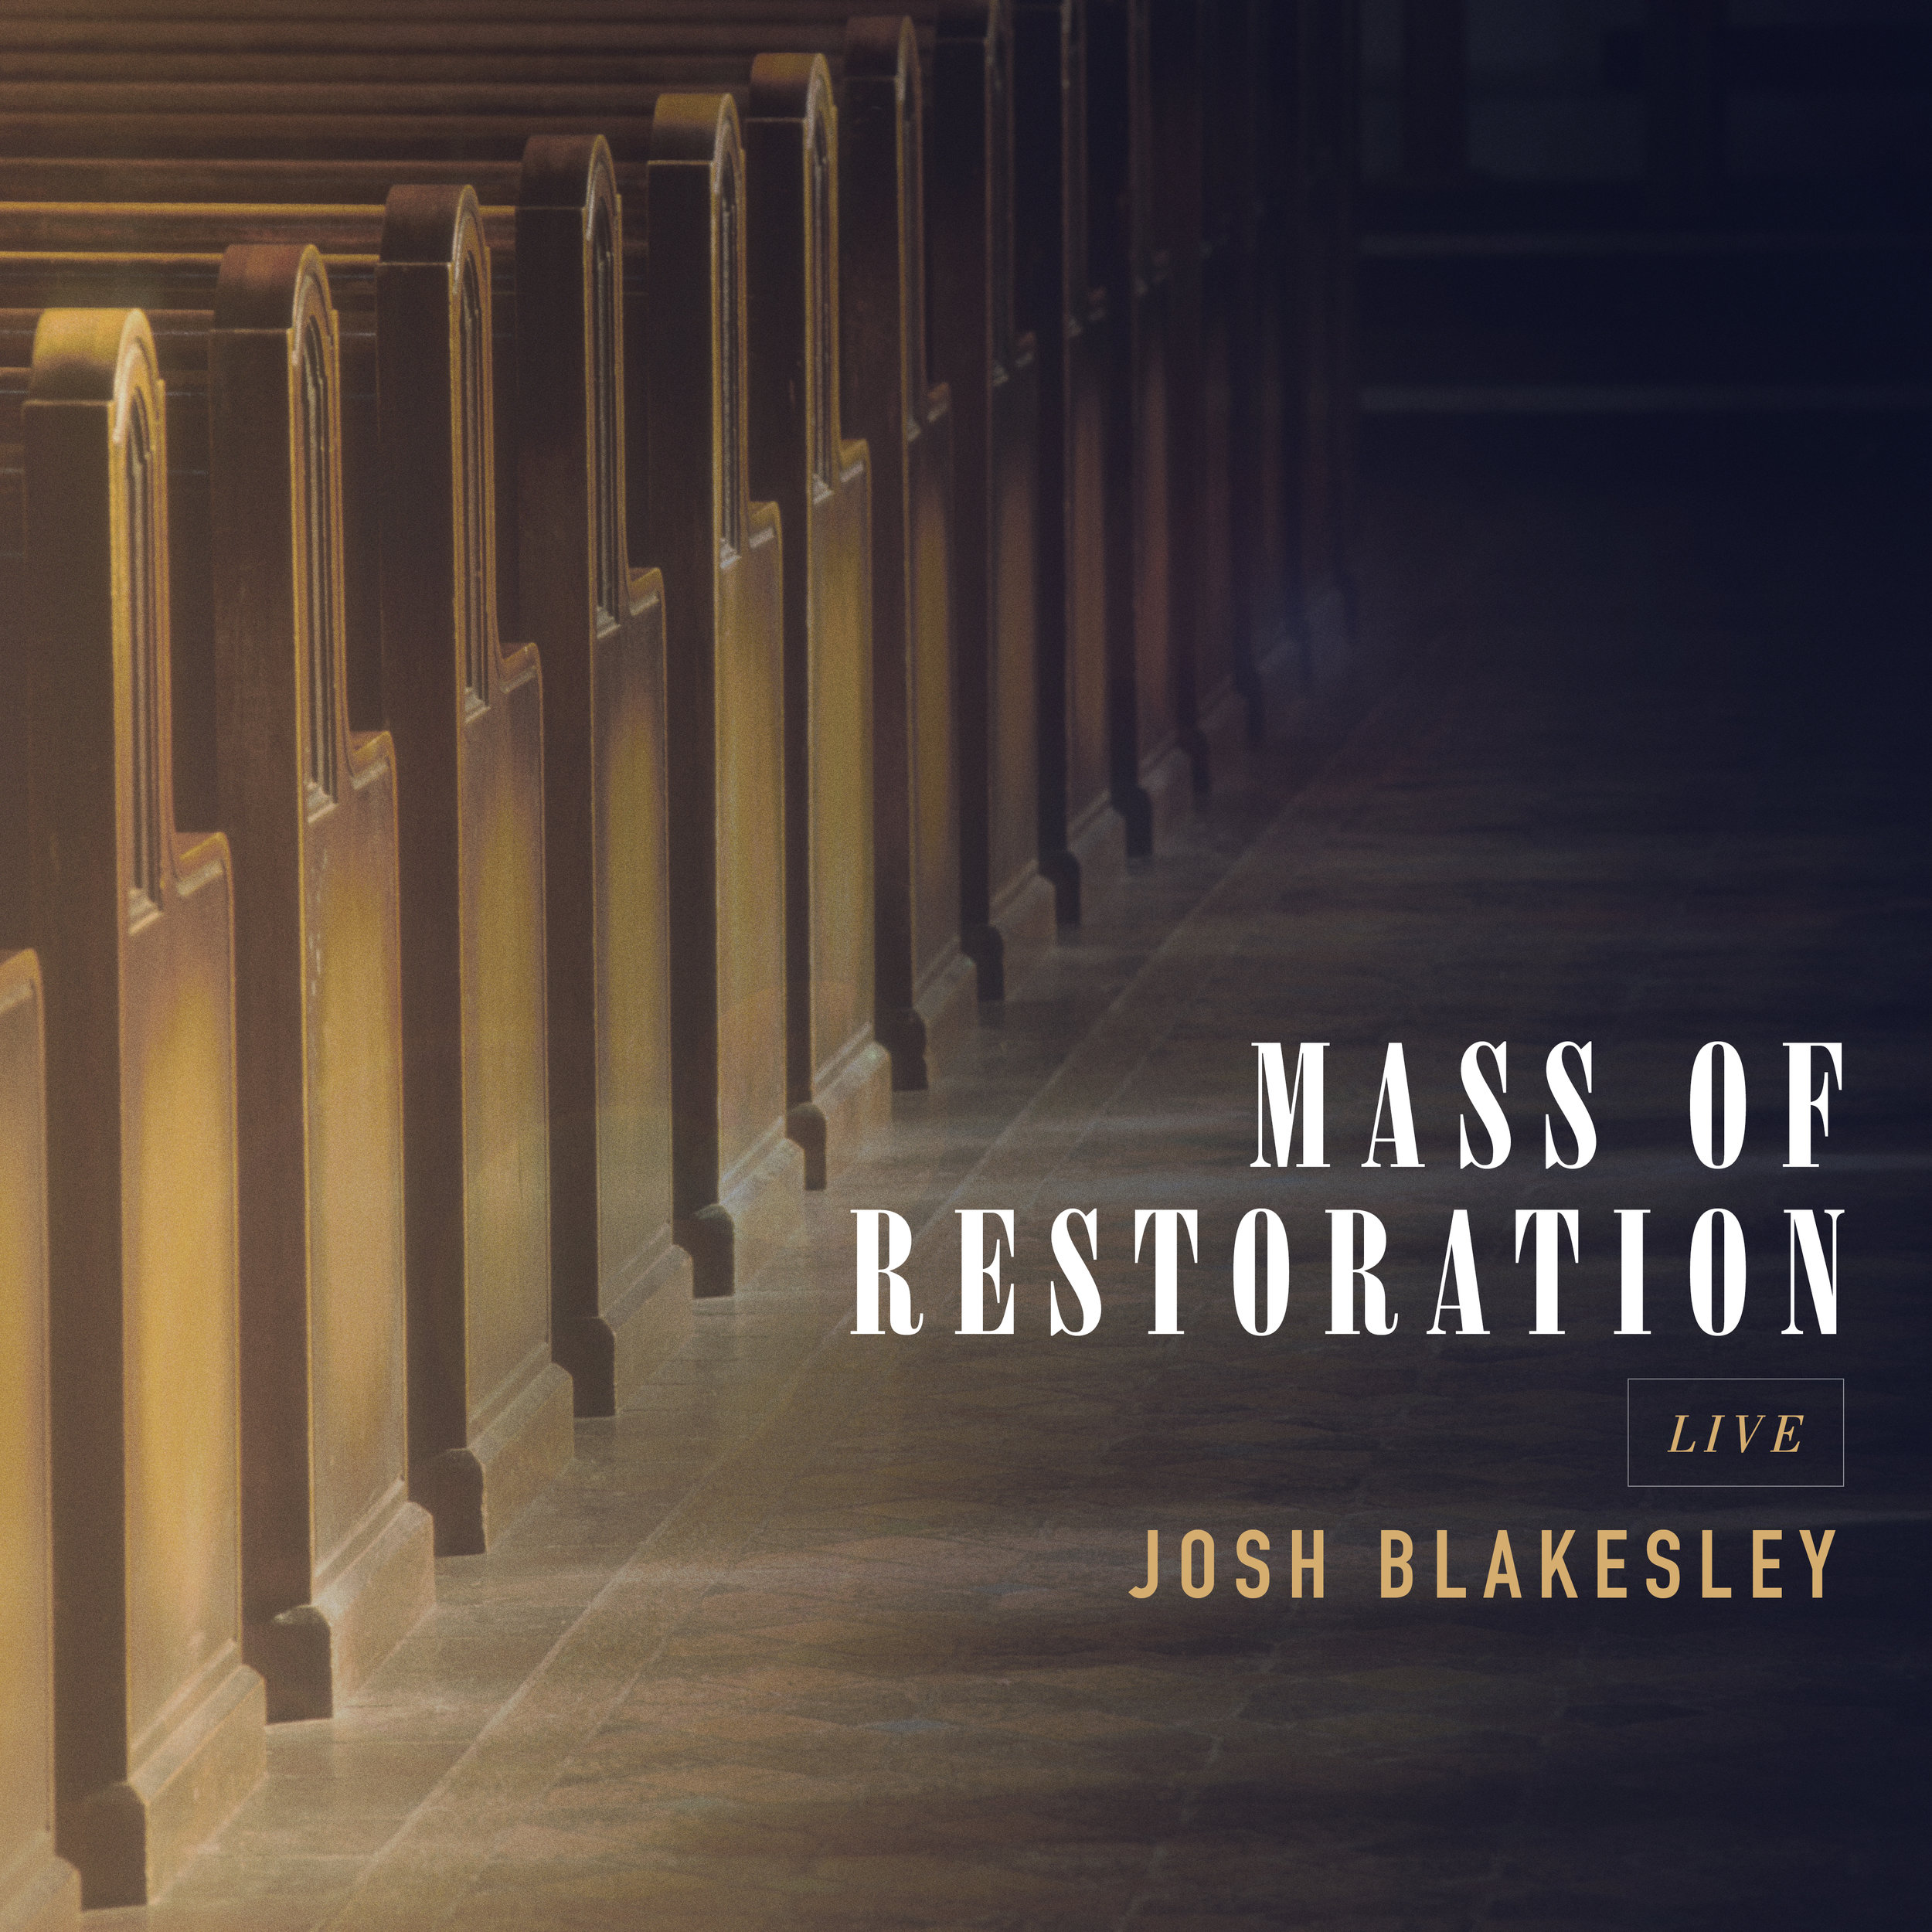 Josh Blakesley_Mass of Restoration_Live_FINAL.jpg